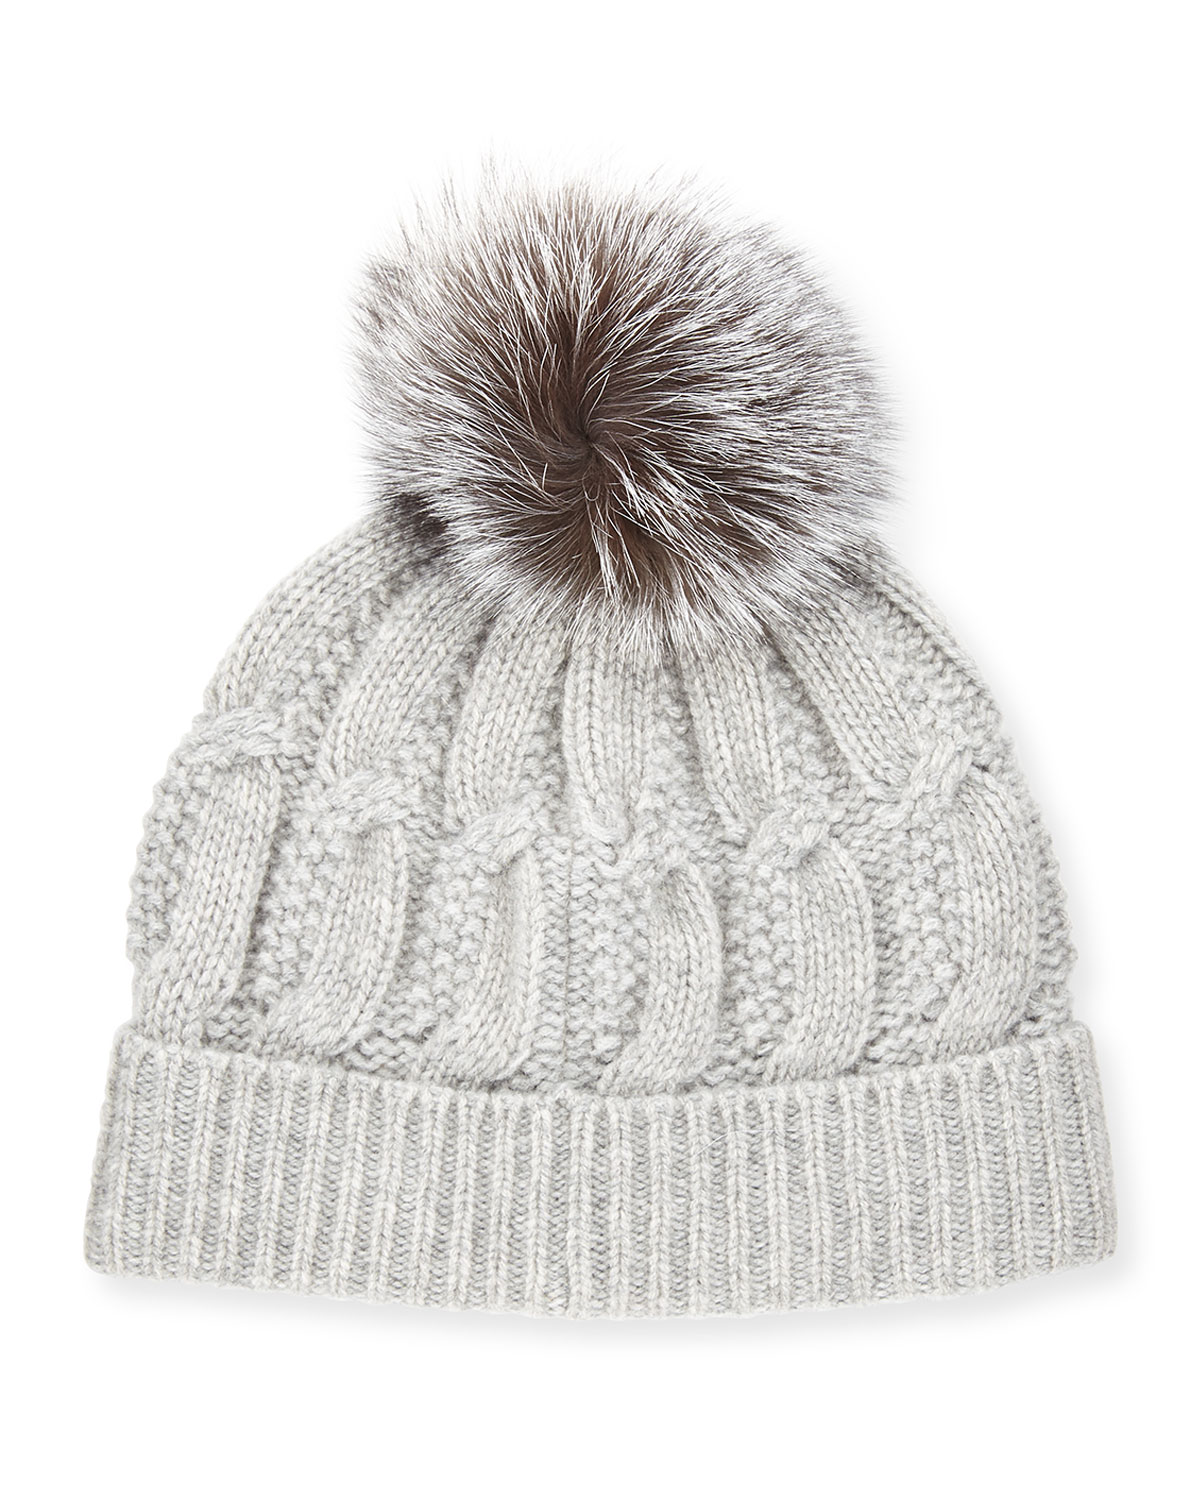 fff617a55 Cable-Knit Cashmere Fur-Pom Beanie Hat, Gray